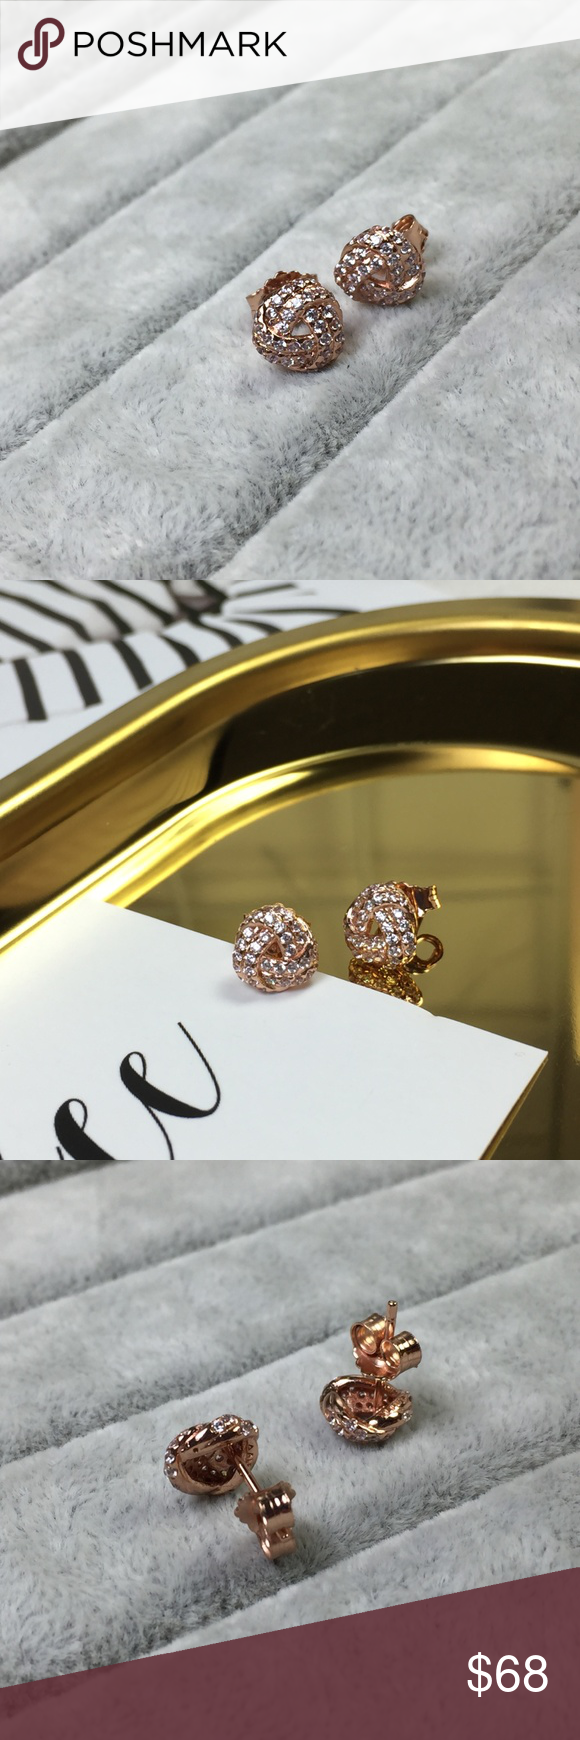 815148a49 Pandora Sparkling Love Knot Stud Rose Earrings Authentic Pandora Sparkling  Love Knot Stud Rose Earrings Included